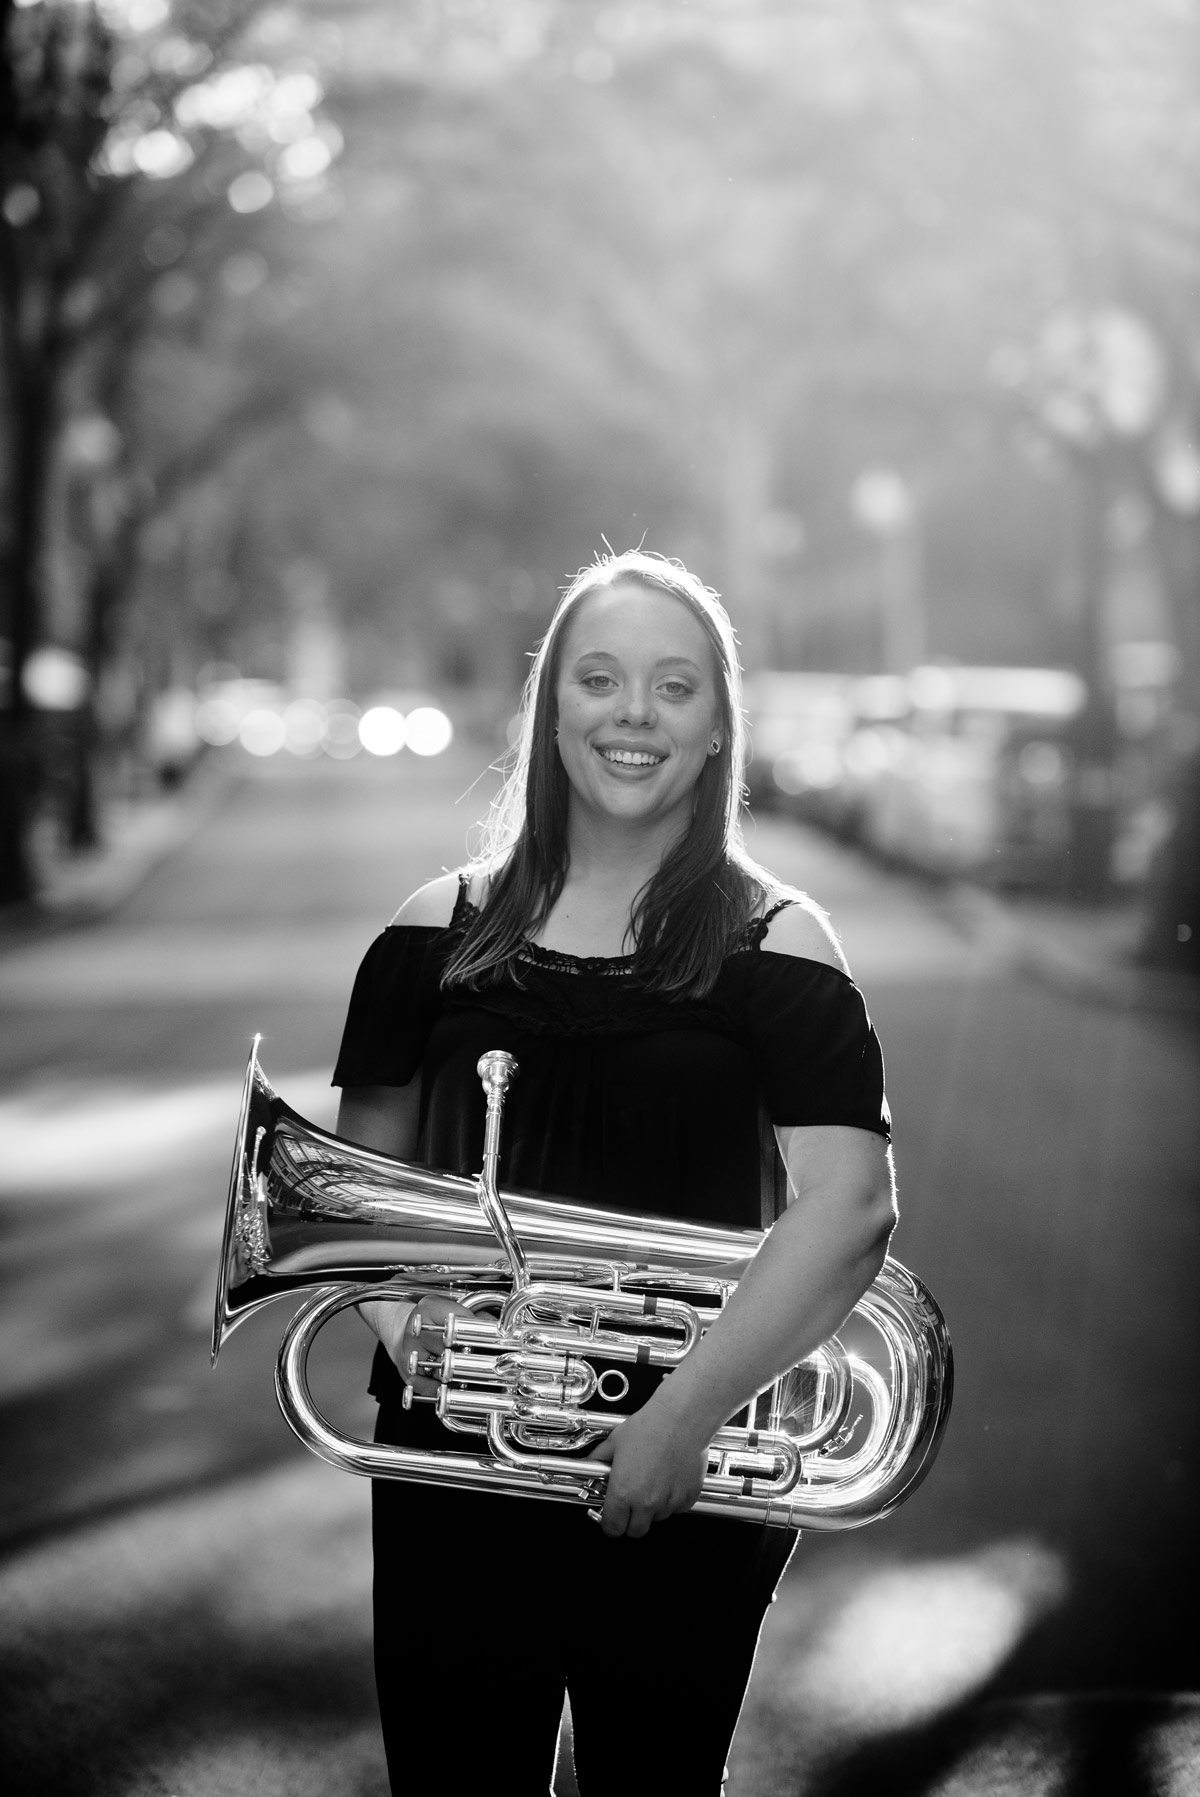 charleston wv high school senior portraits capitol street euphonium